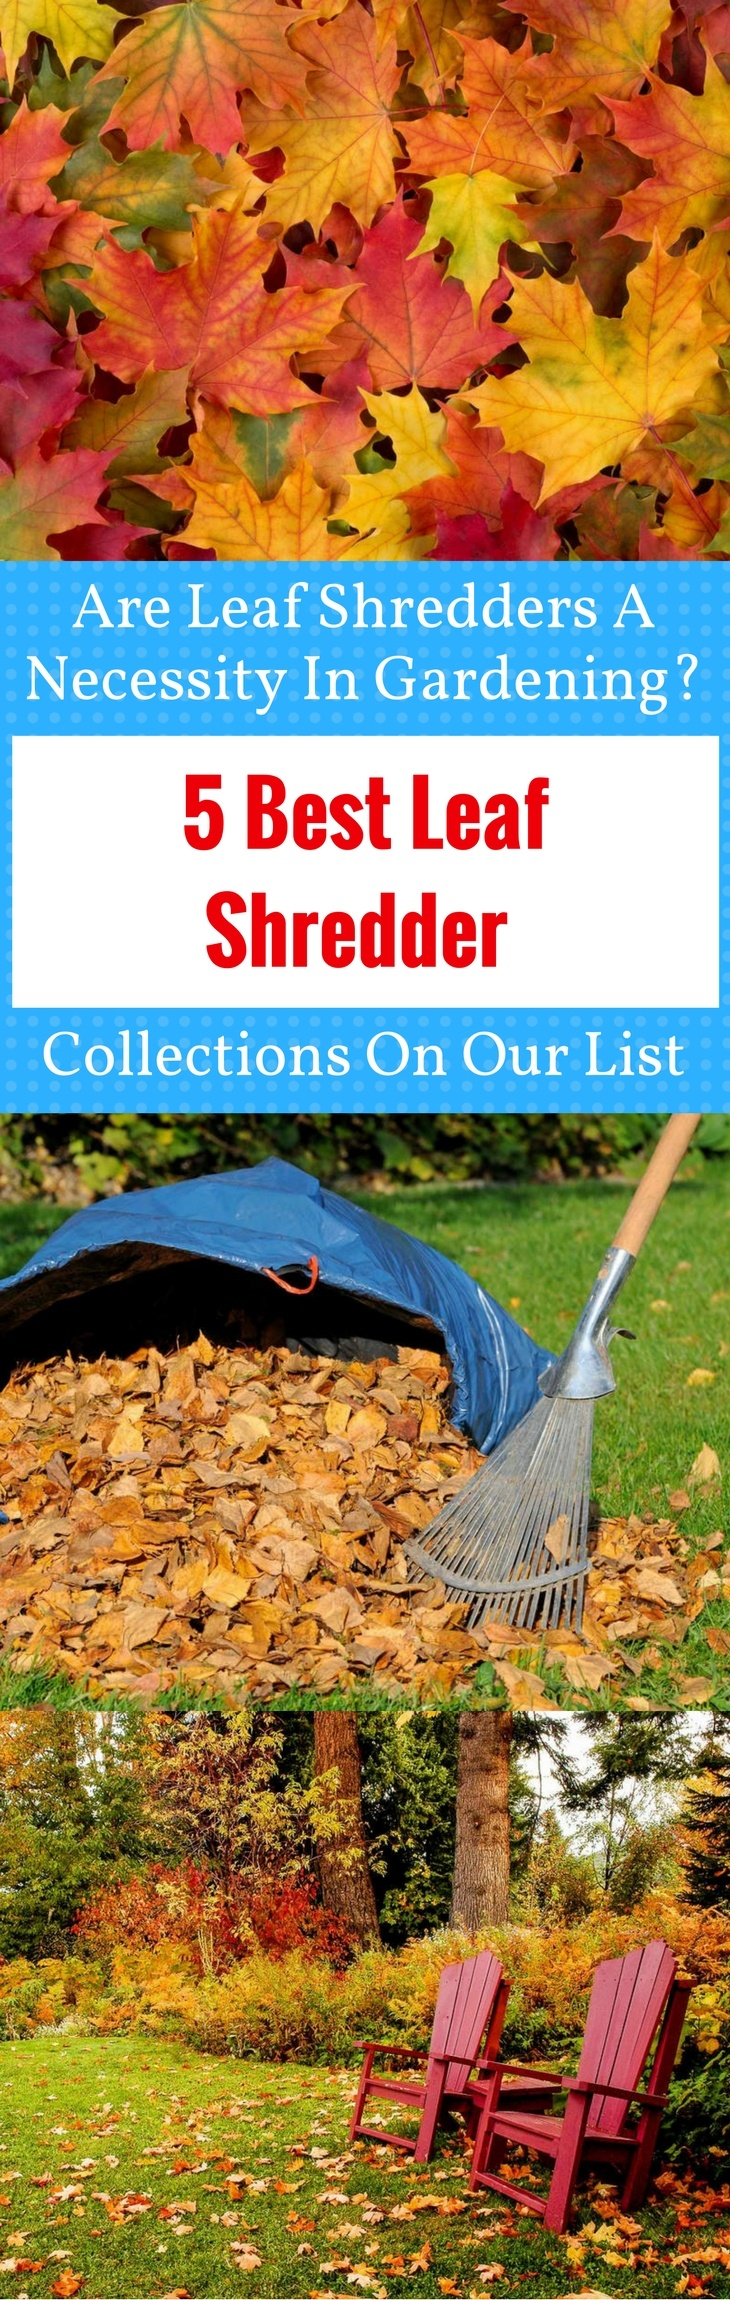 5 Best Leaf Shredder Collections on Our List pin it